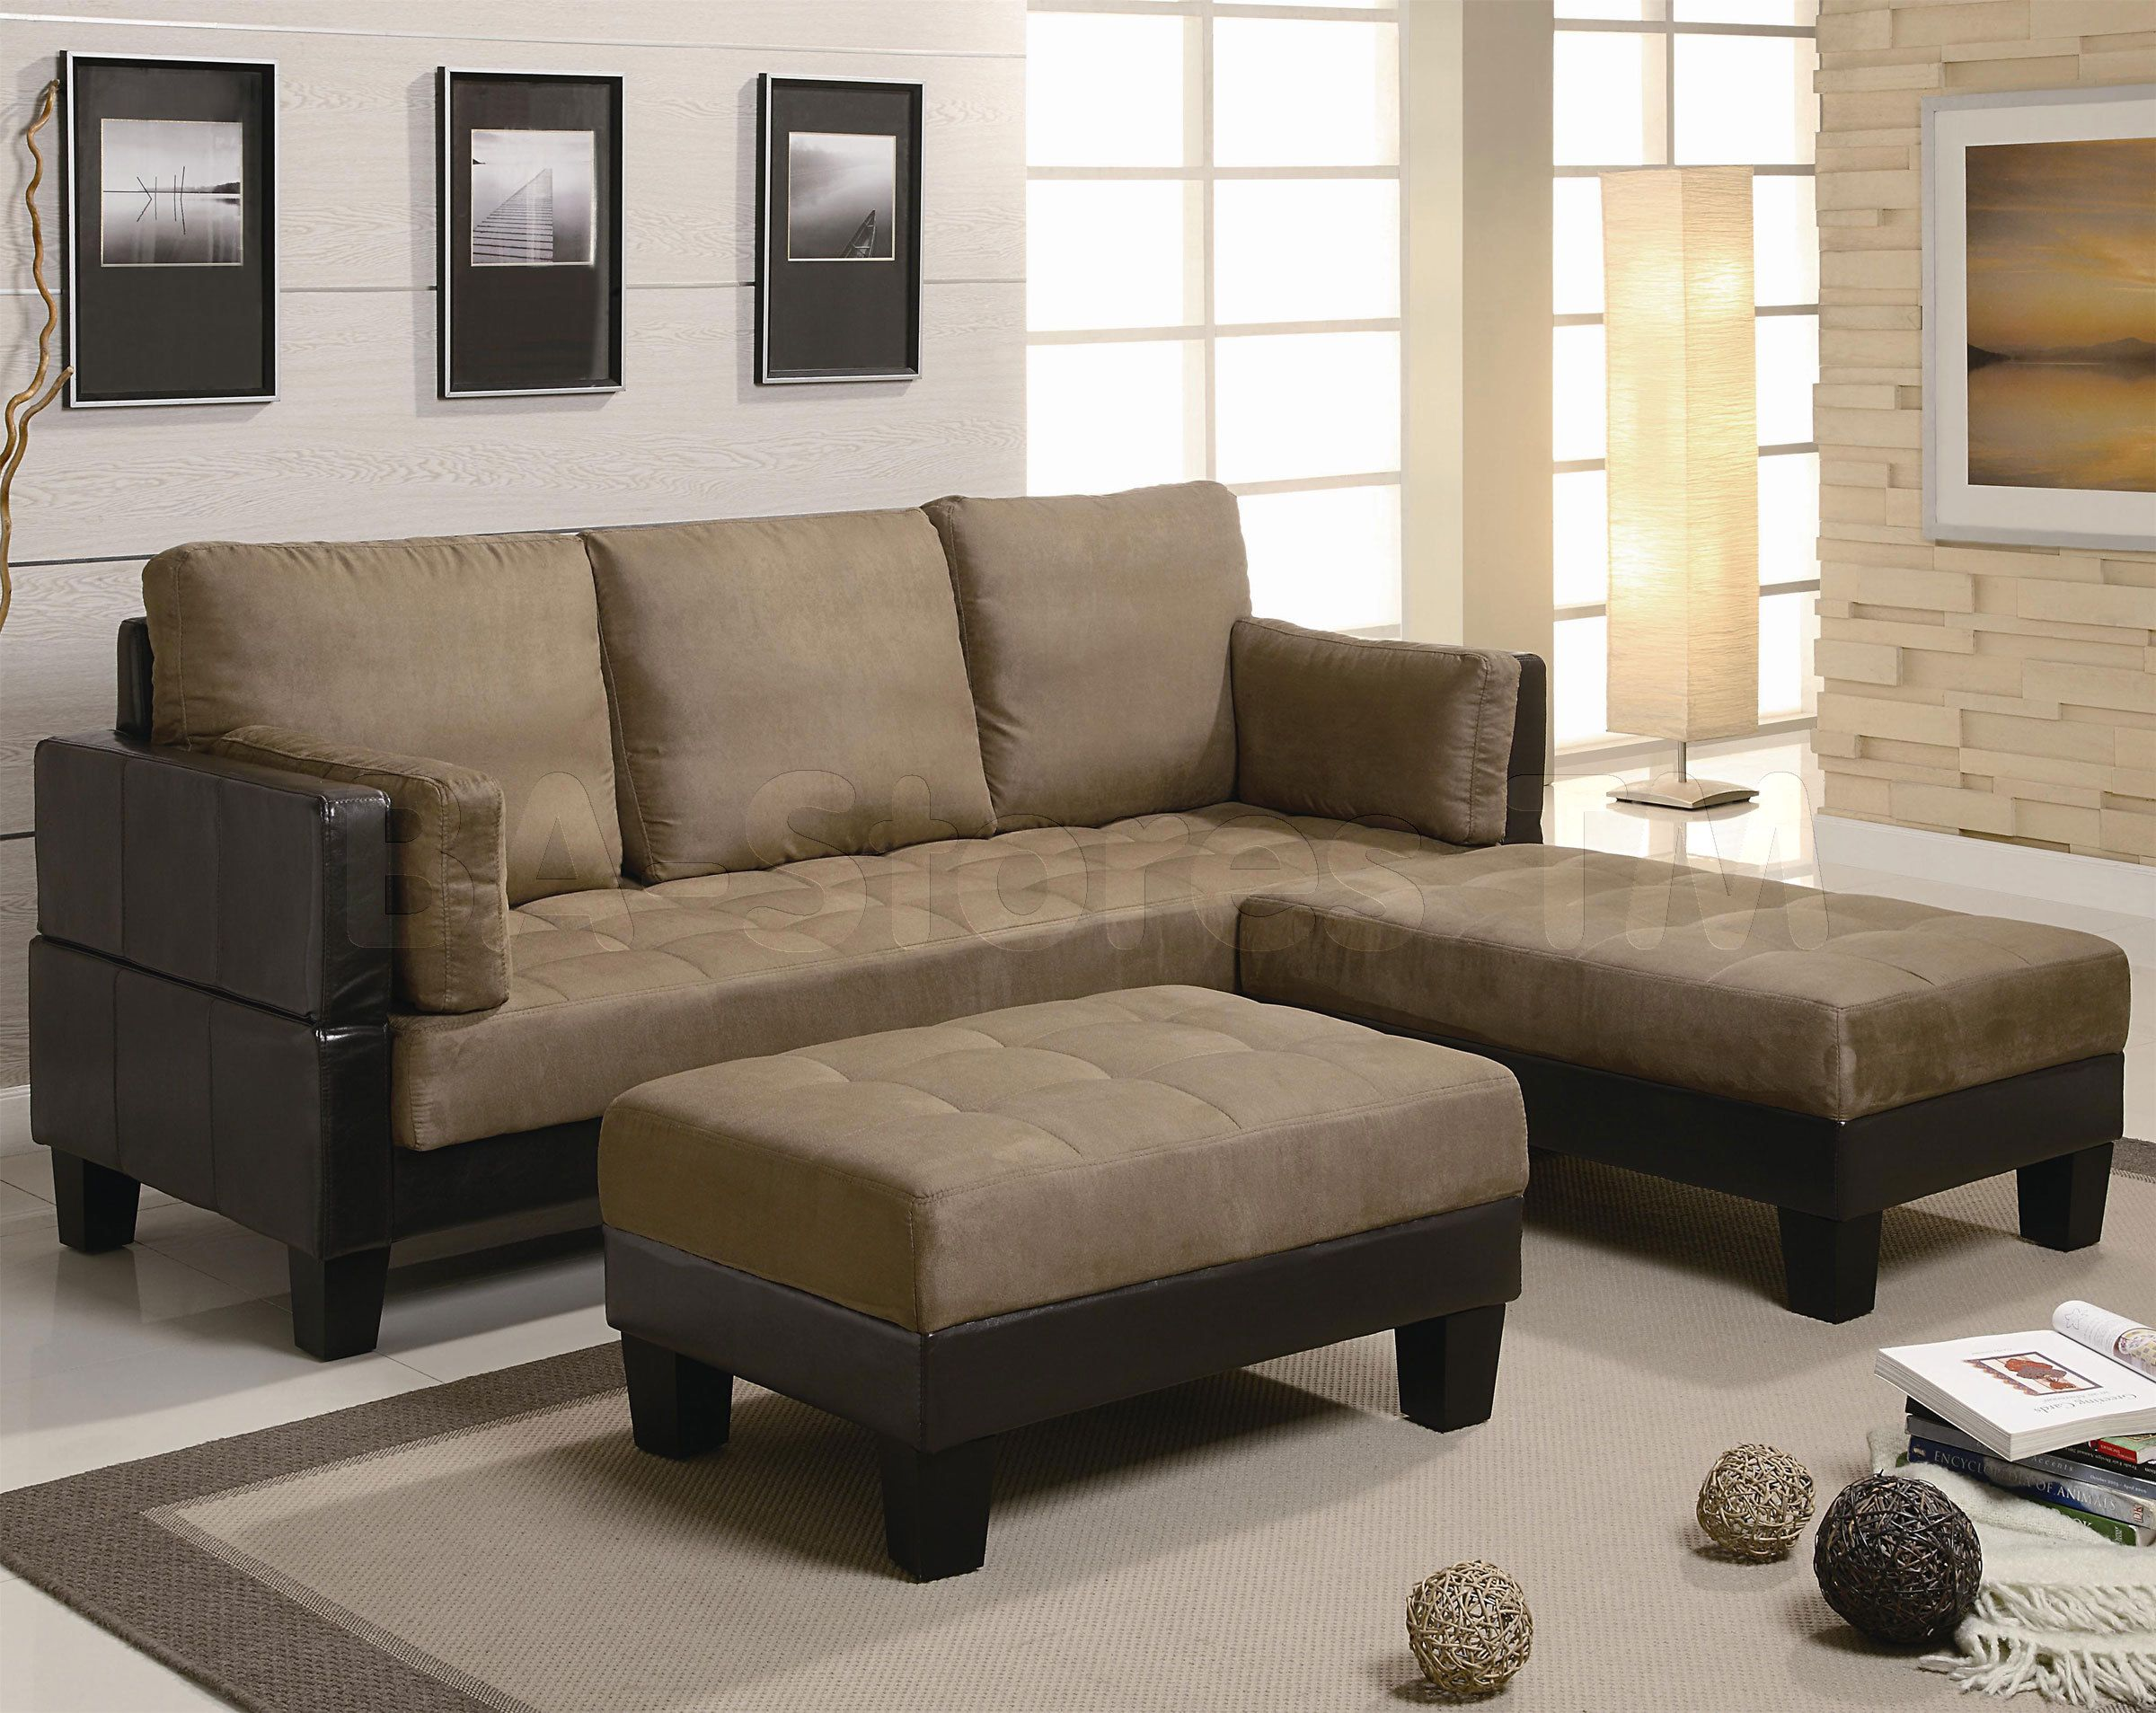 Fulton Contemporary Sofa Bed Group with 2 Ottomans Coaster Co